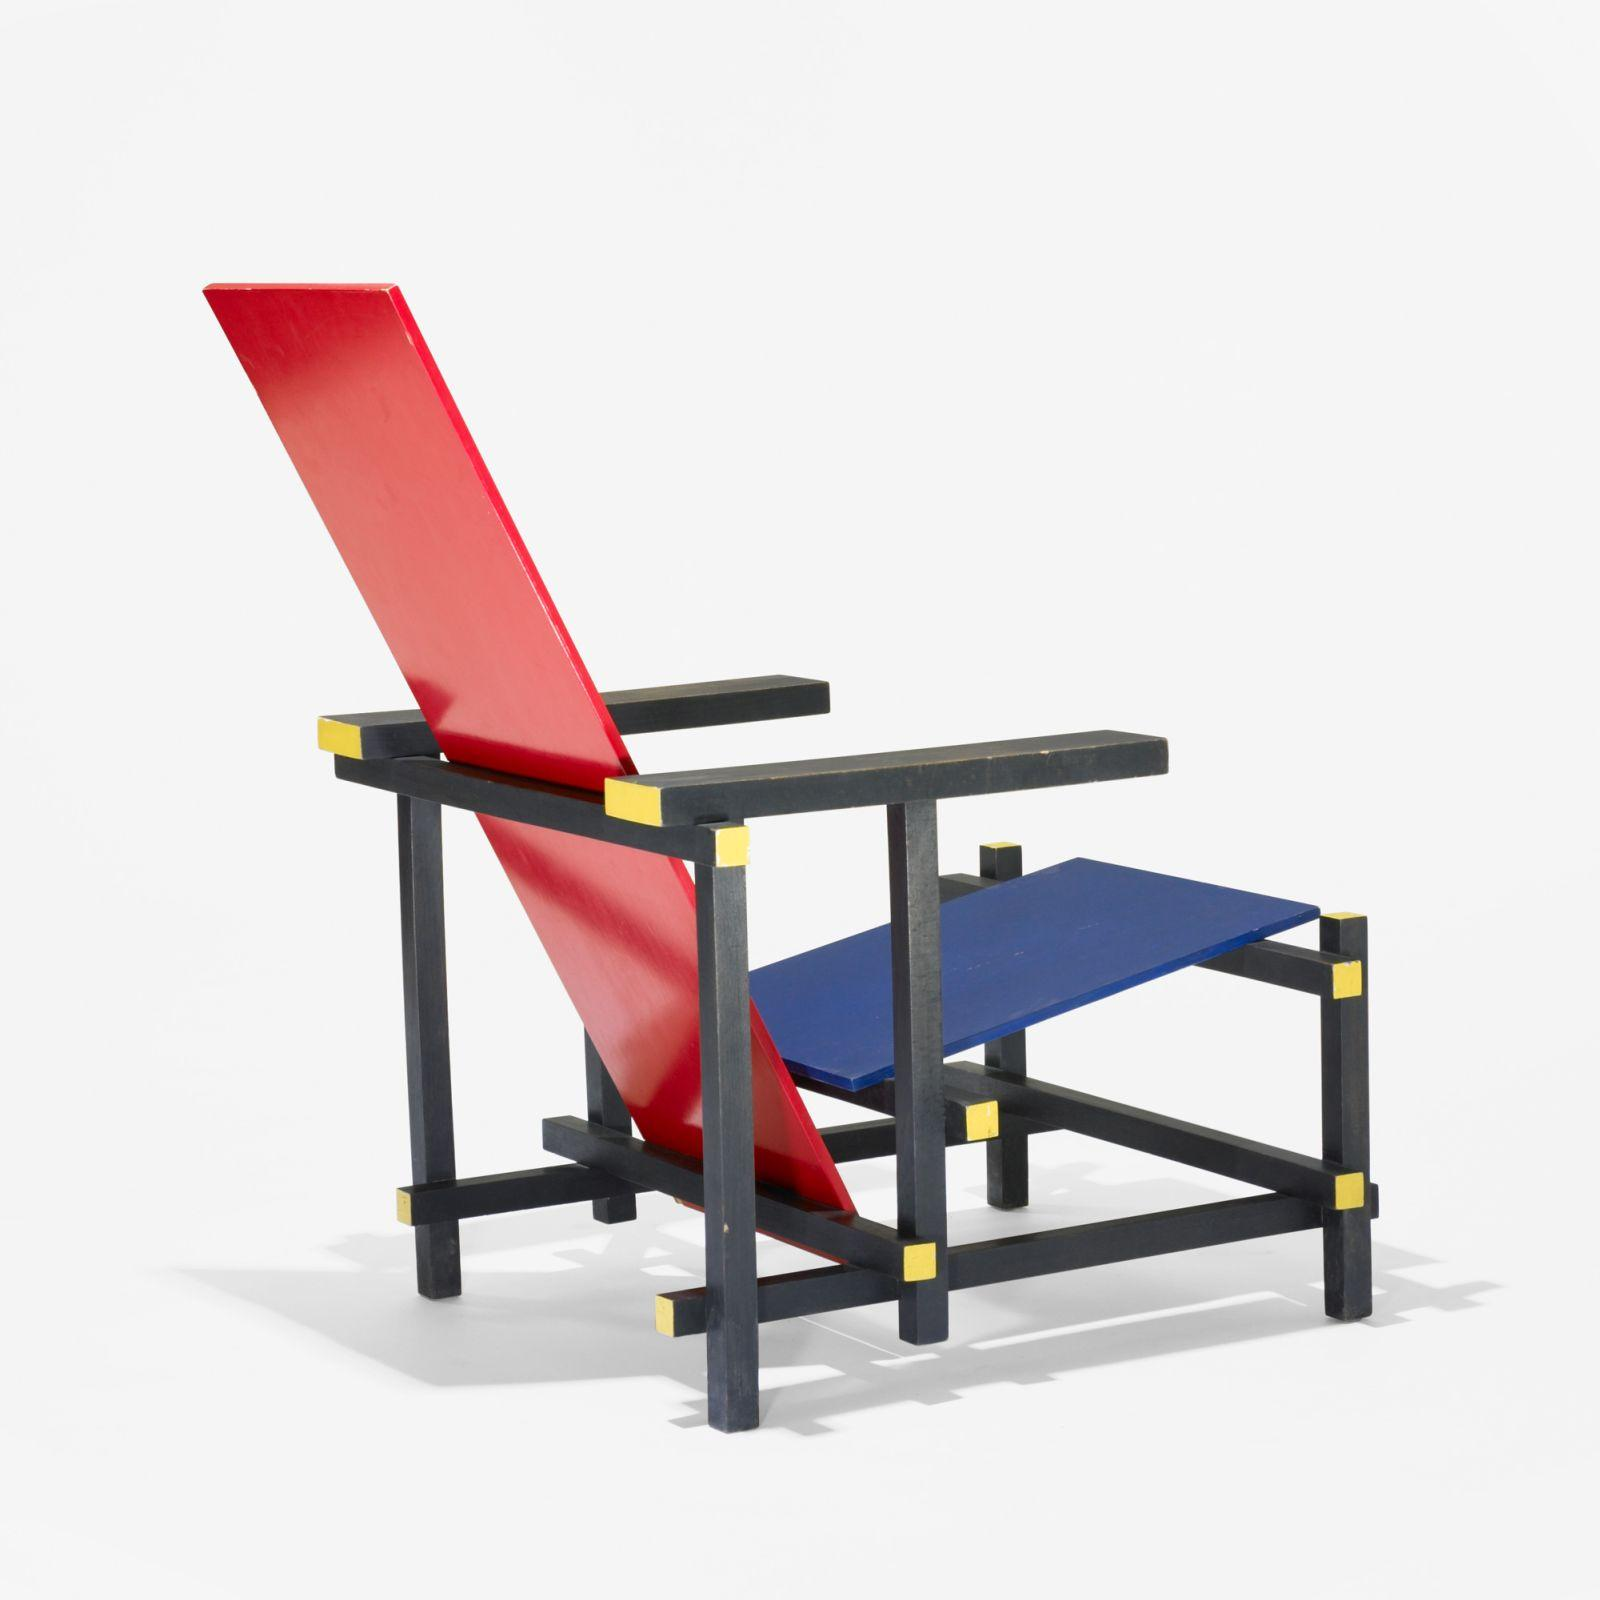 images of rietveld schroder house by gerrit rietveld. Black Bedroom Furniture Sets. Home Design Ideas